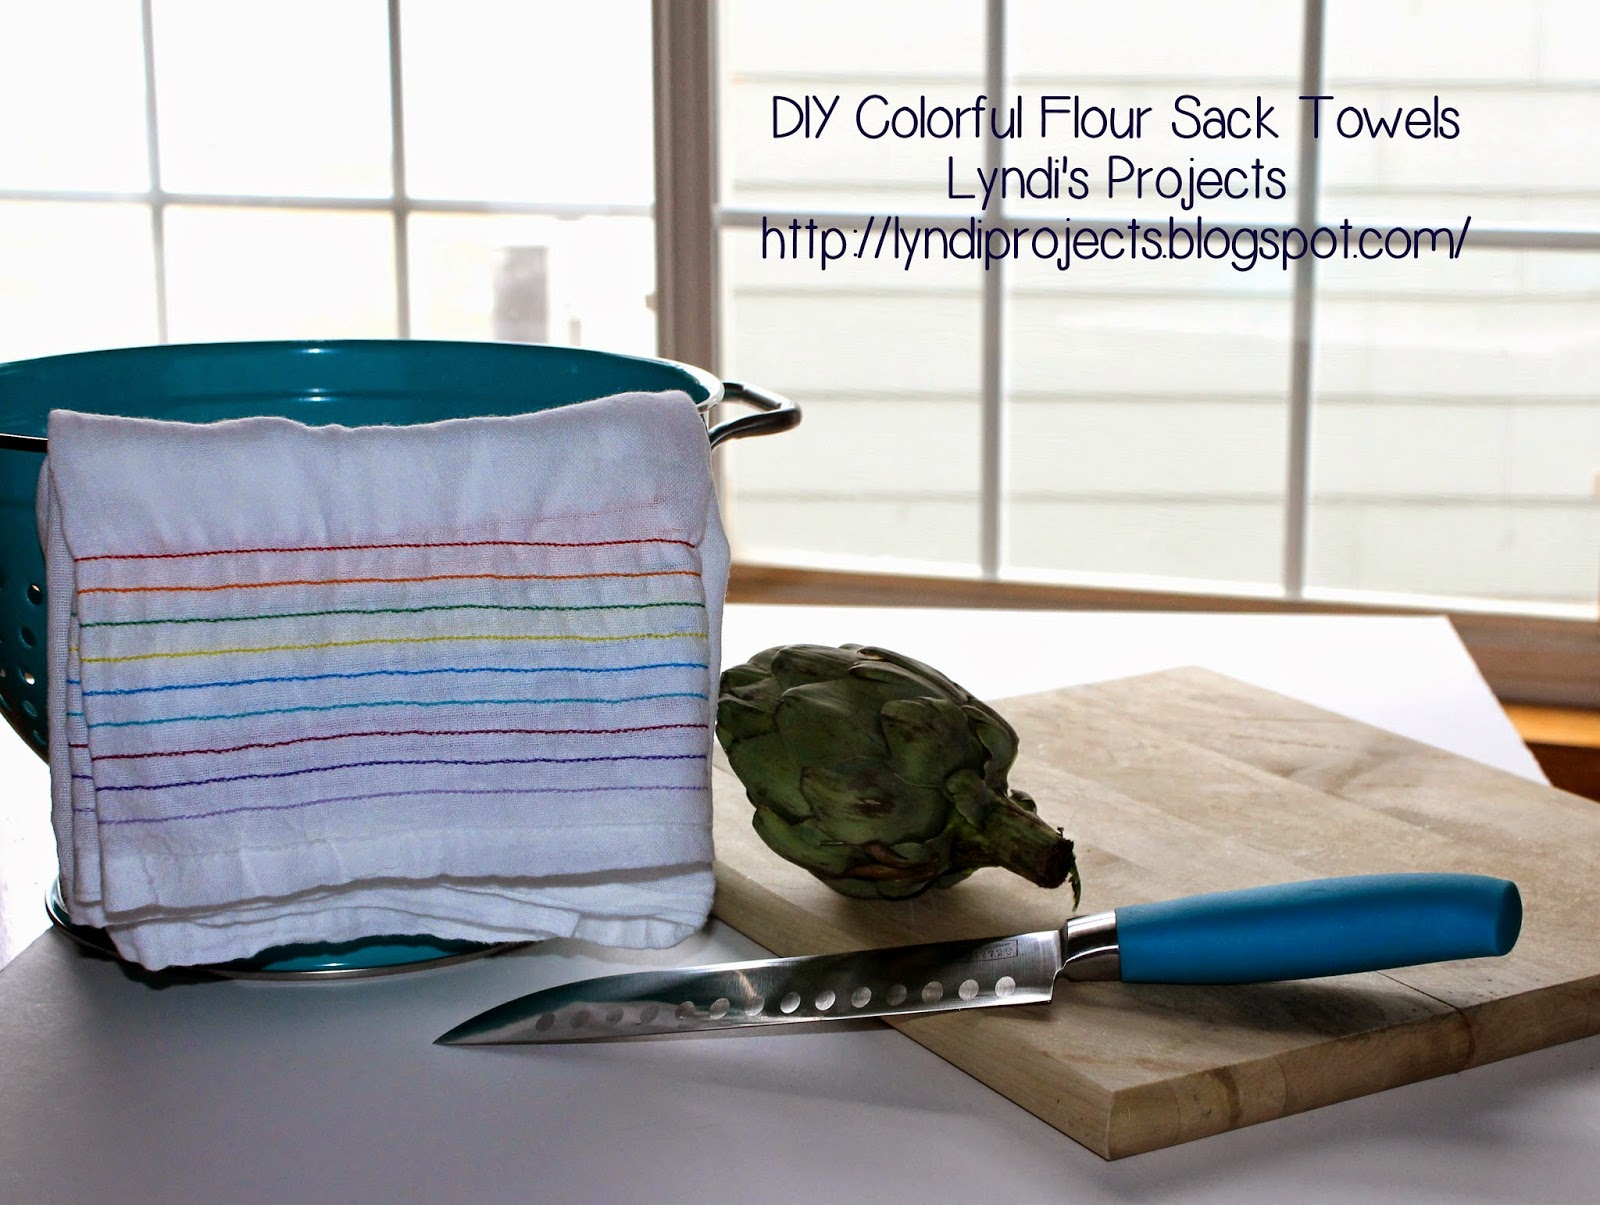 colorful flour sack towels, rainbow flour sack towels, DIY